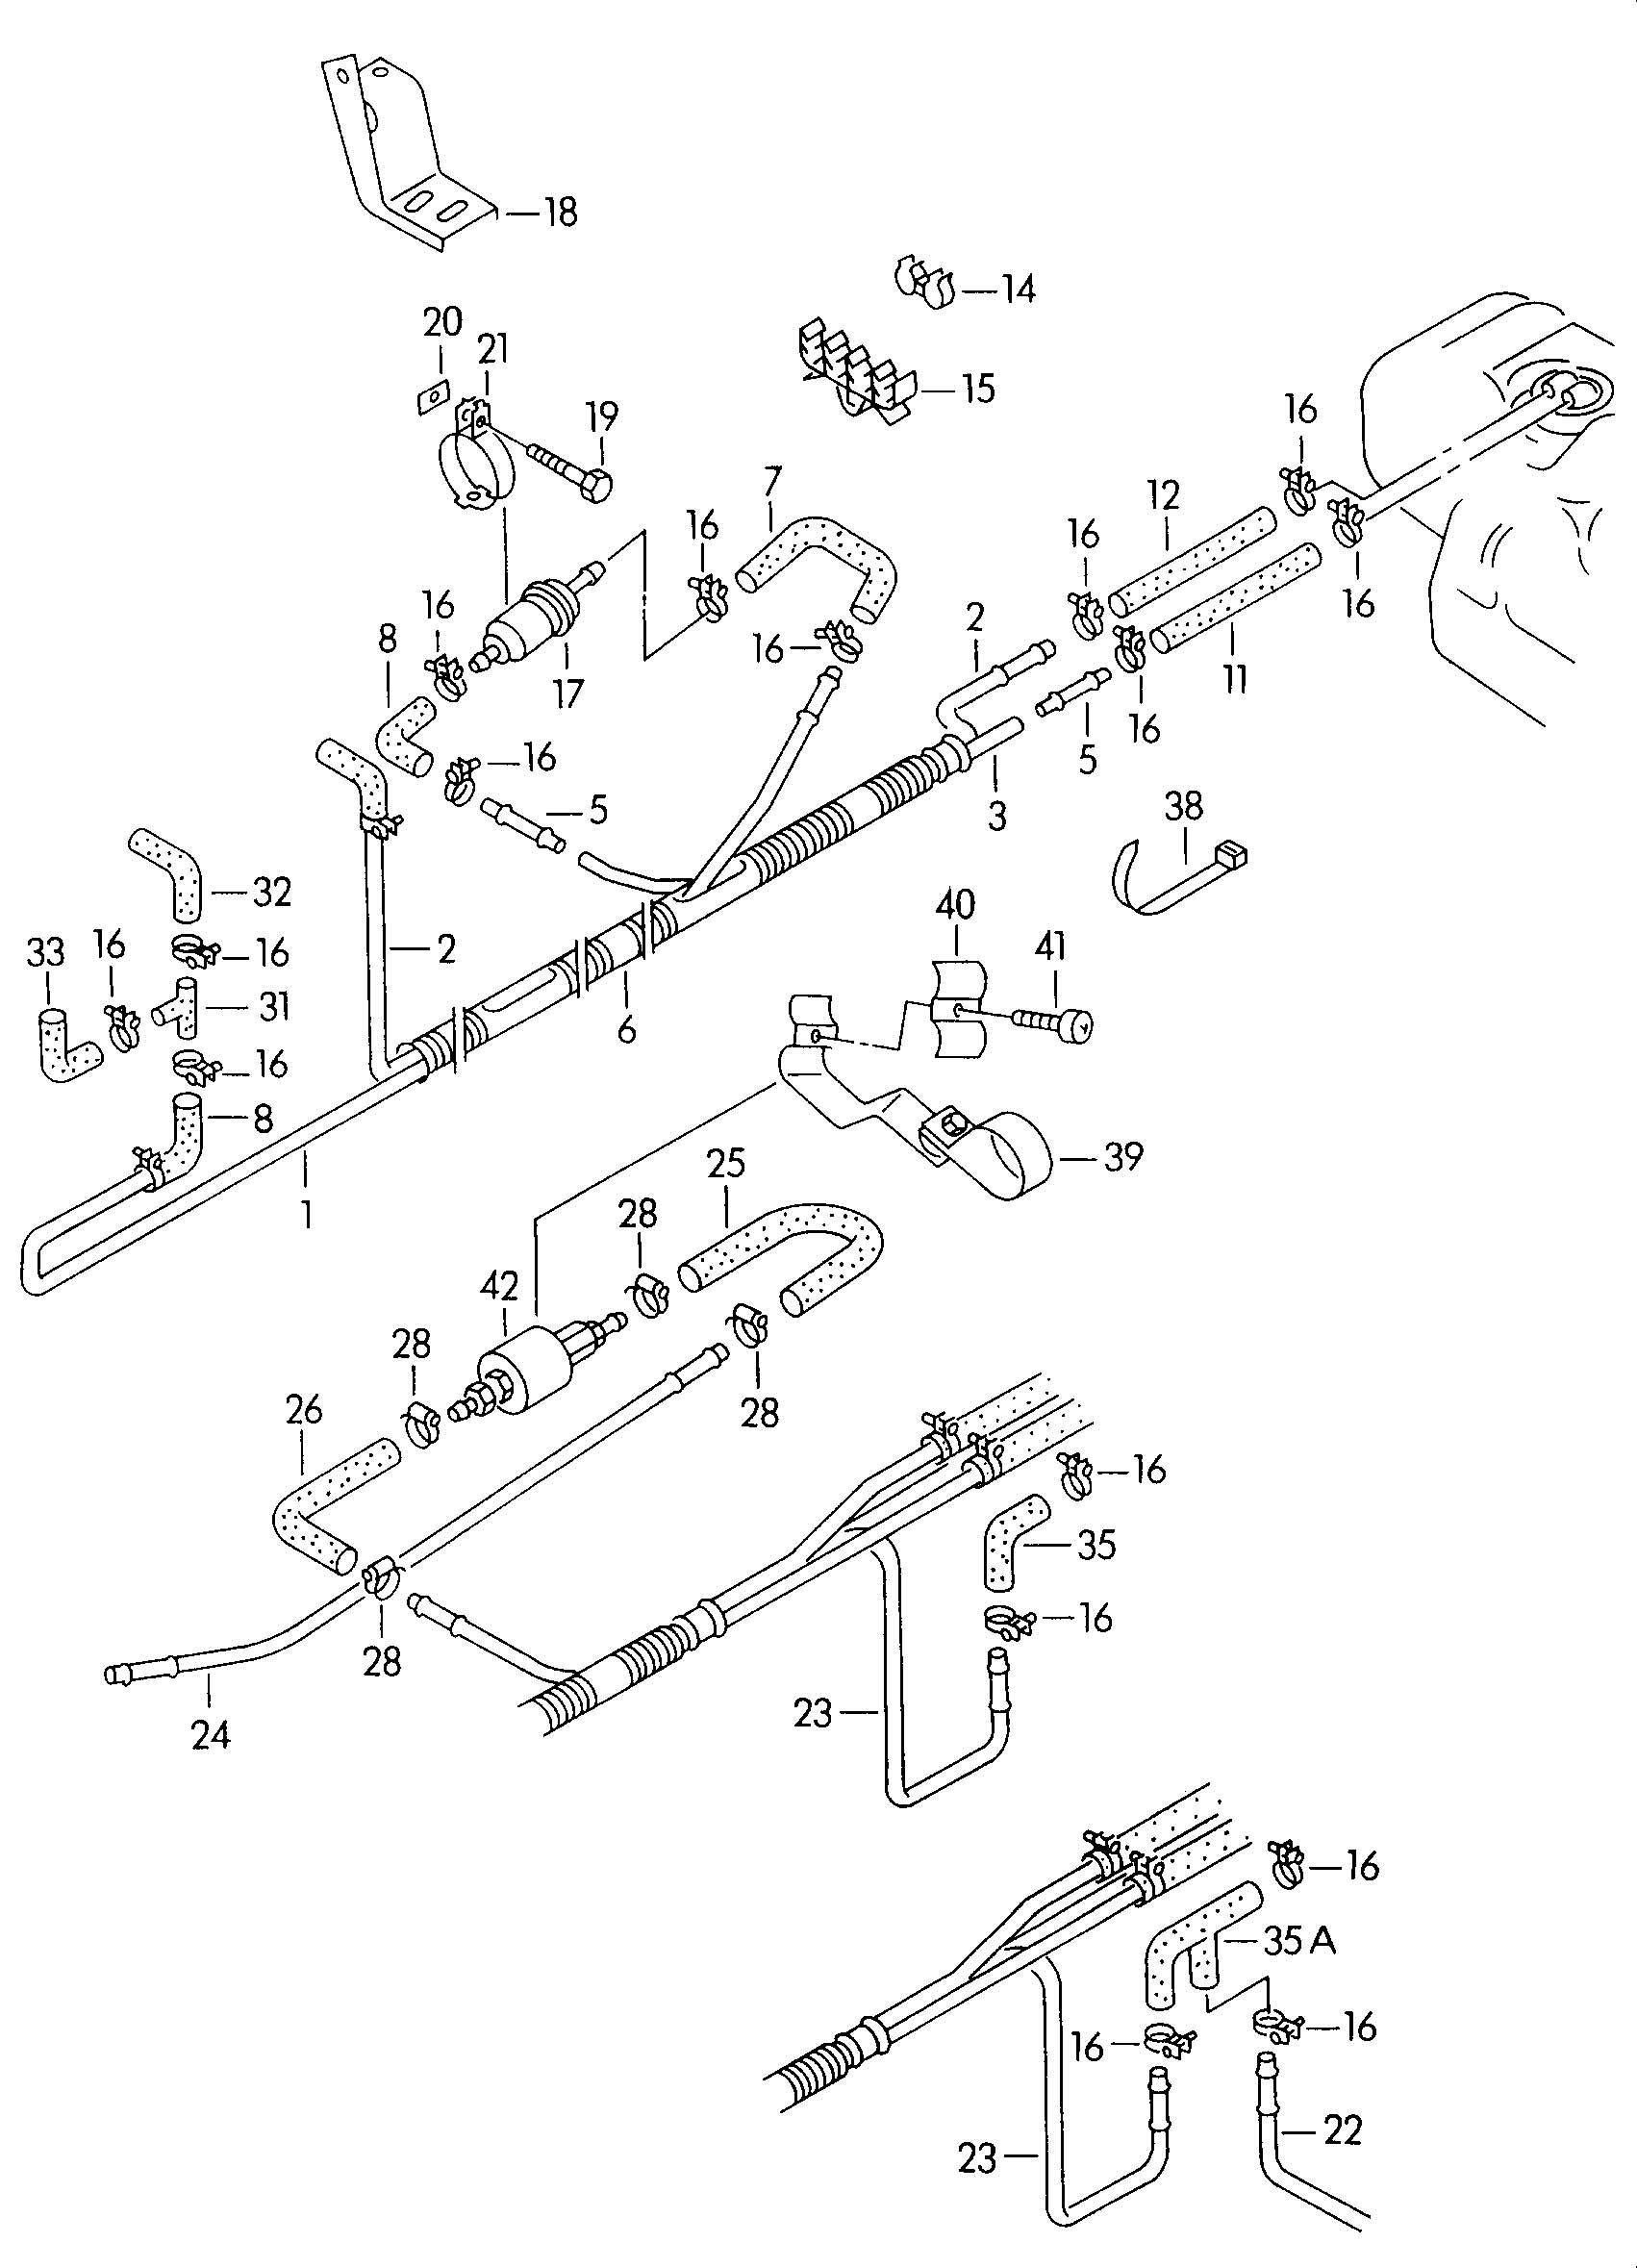 Volkswagen Eurovan Fuel Line For Vehicles With Additional